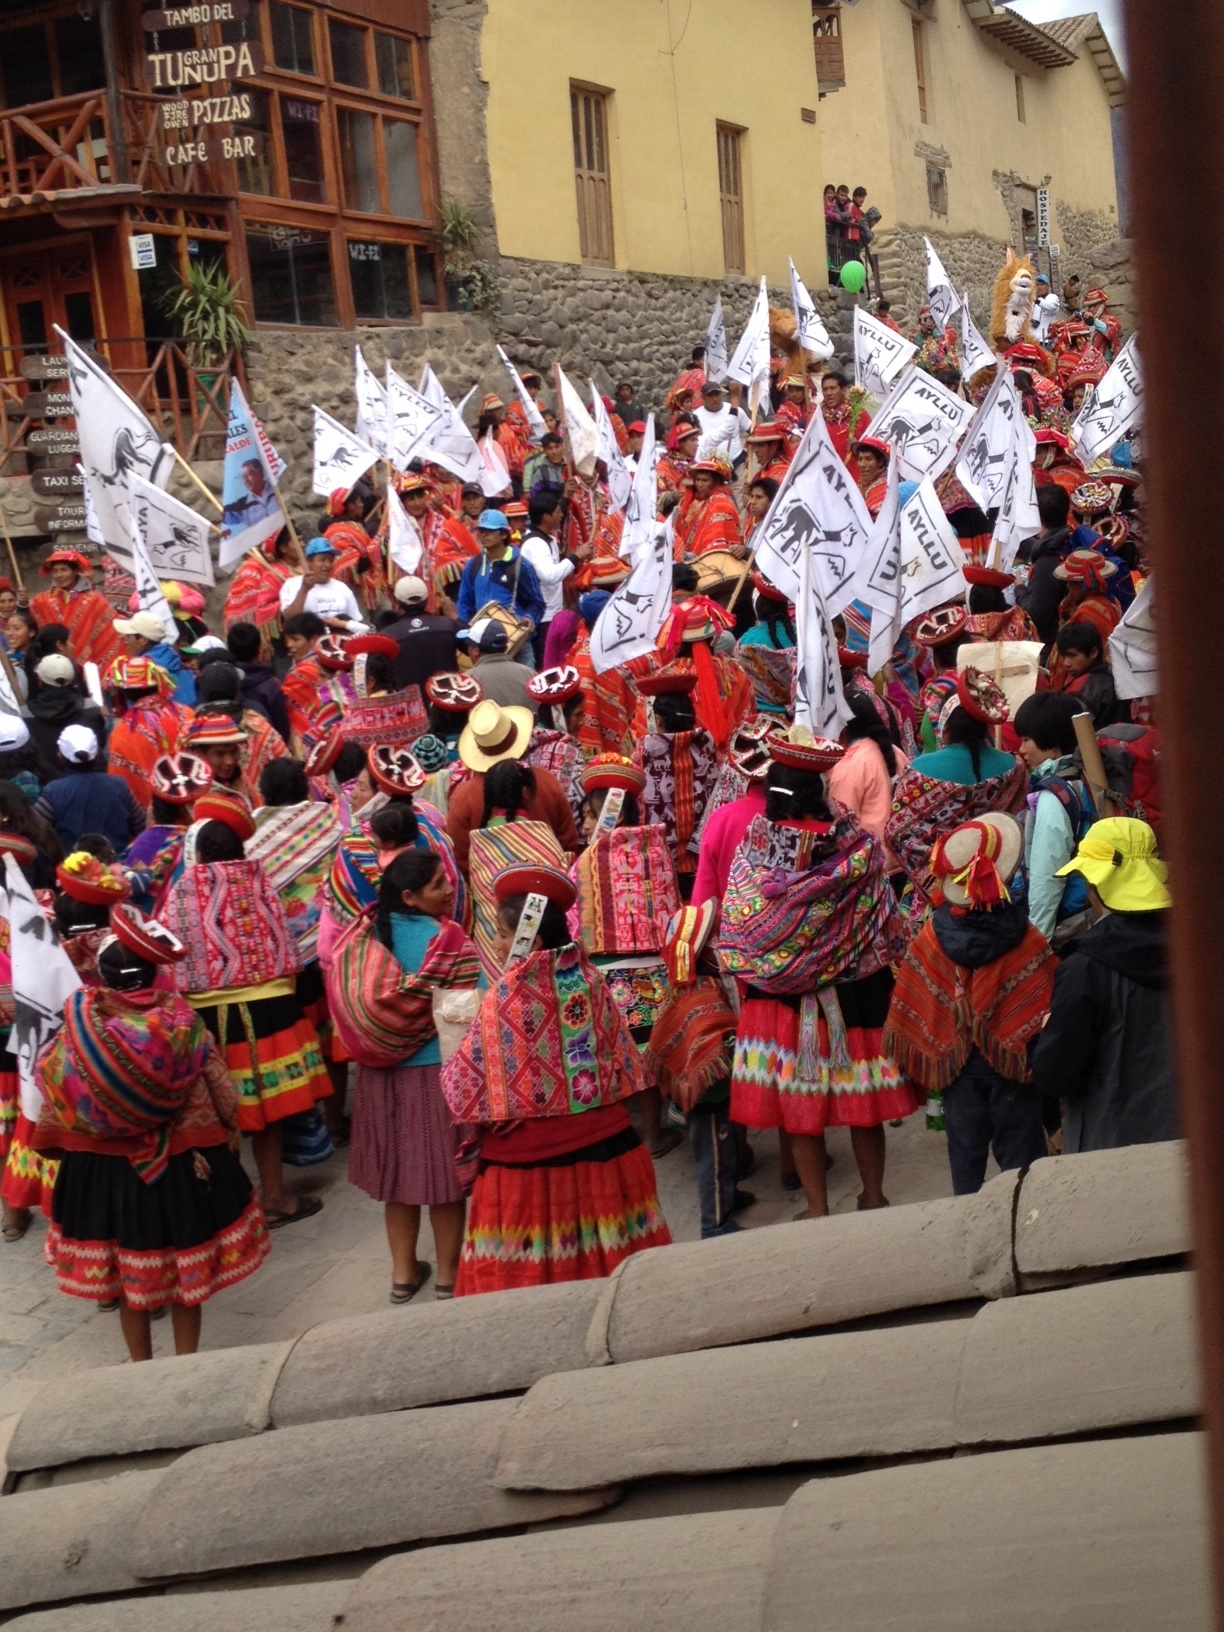 It was quite a crowd of local people who dress more traditionally here than Cusco.